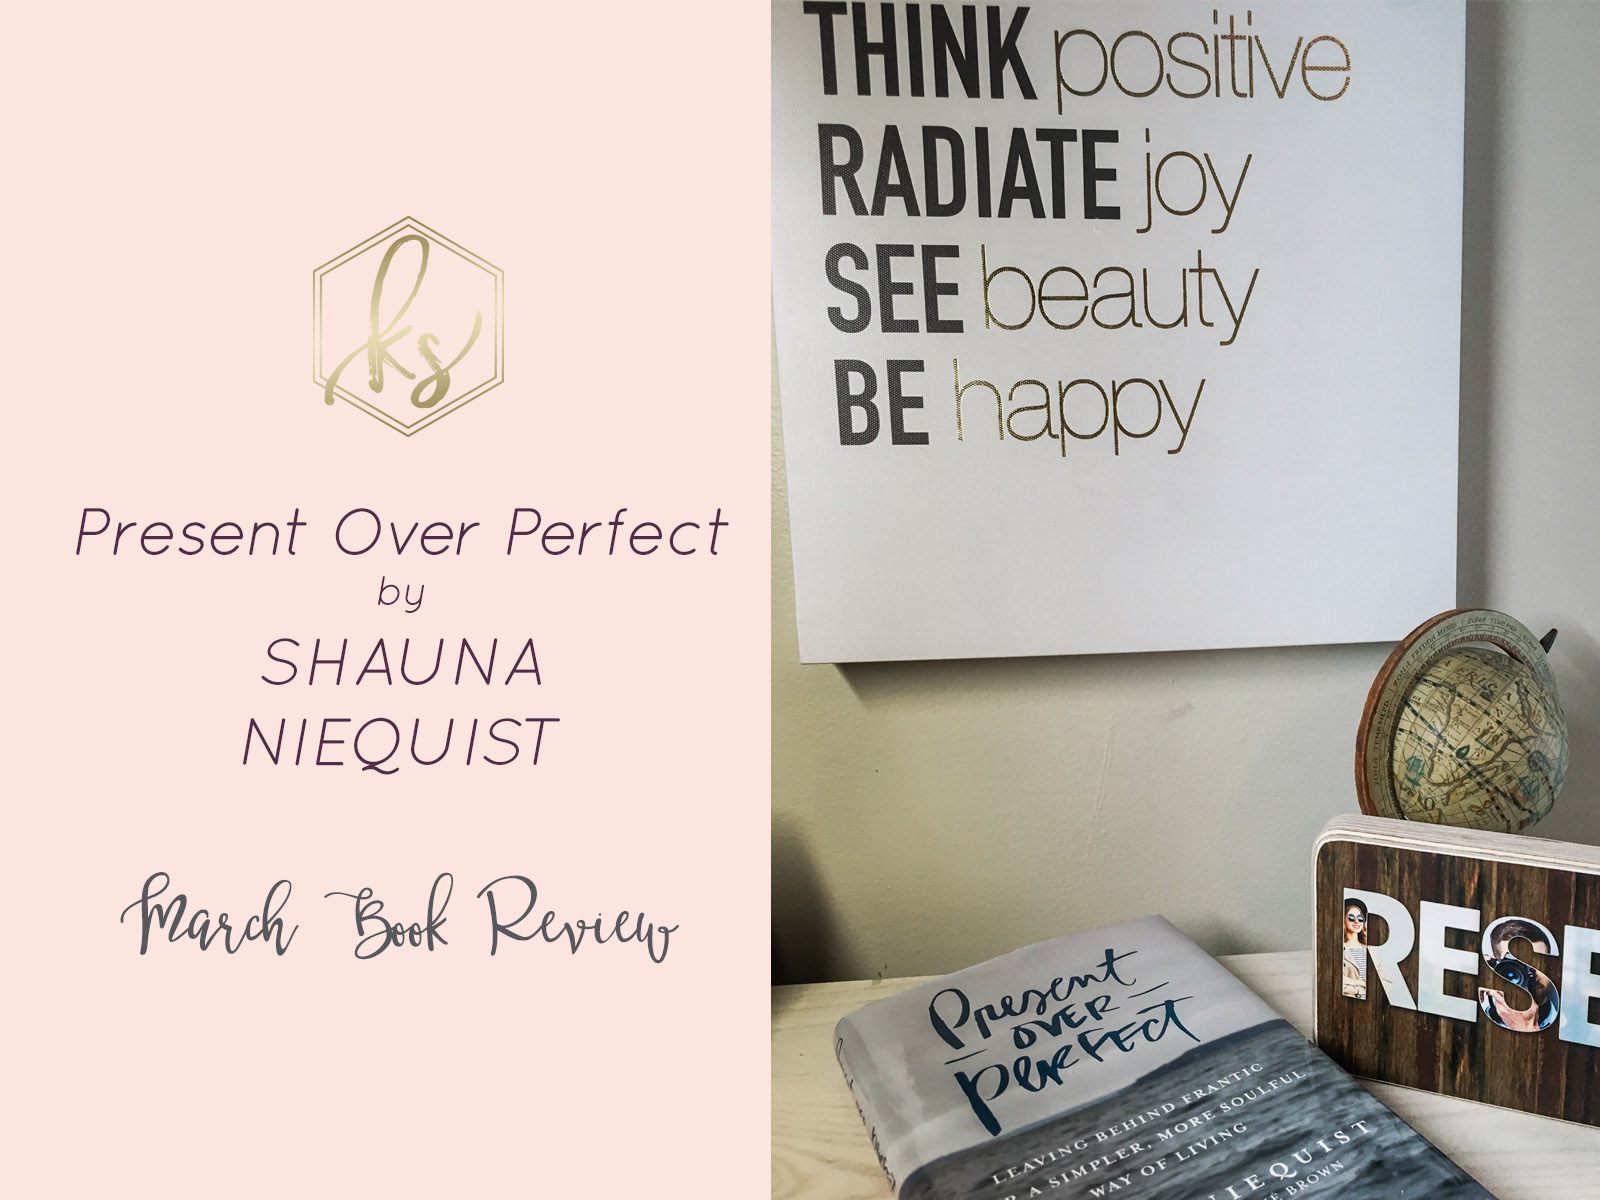 Present Over Perfect by Shauna Niequist   March Book Review     That s exactly what happened when I started reading Present Over Perfect by  Shauna Niequist several months ago